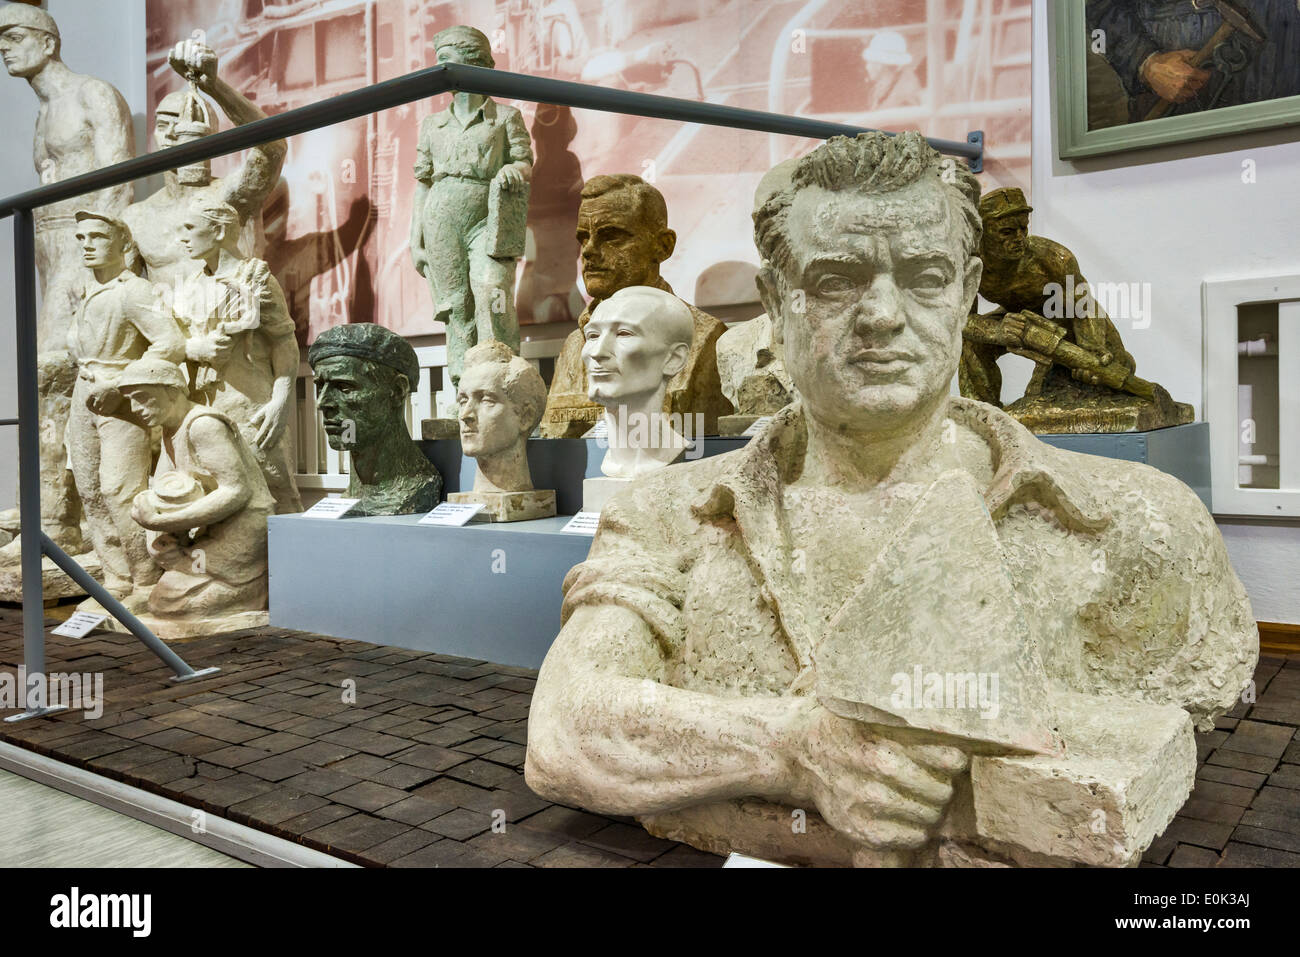 The Bricklayer sculpture, Socialist Realism Art Gallery at Zamoyski Palace in Kozlowka near Lublin, Malopolska, Poland - Stock Image